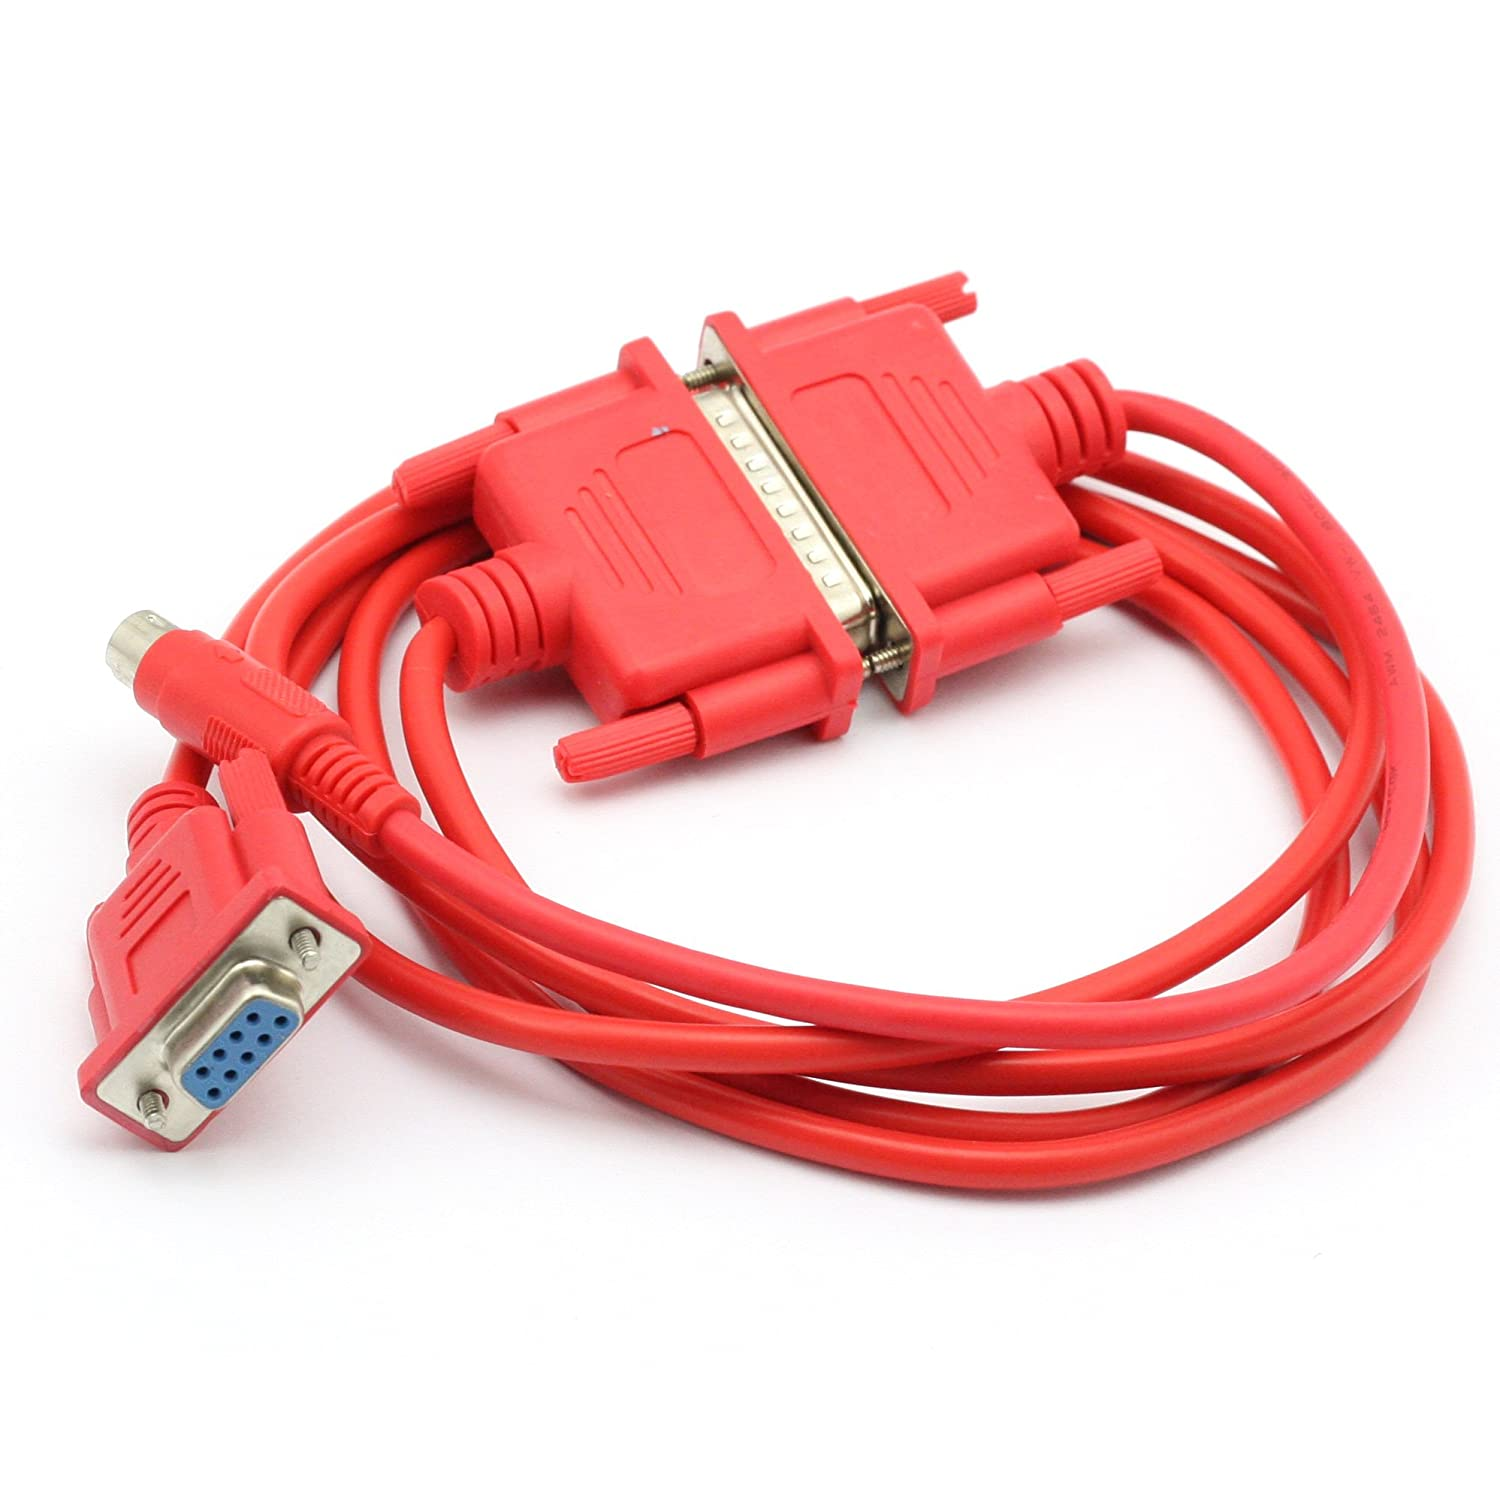 SC09 SC-09 Cable RS232 to RS422 adapter for Mitsubishi MELSEC FX &